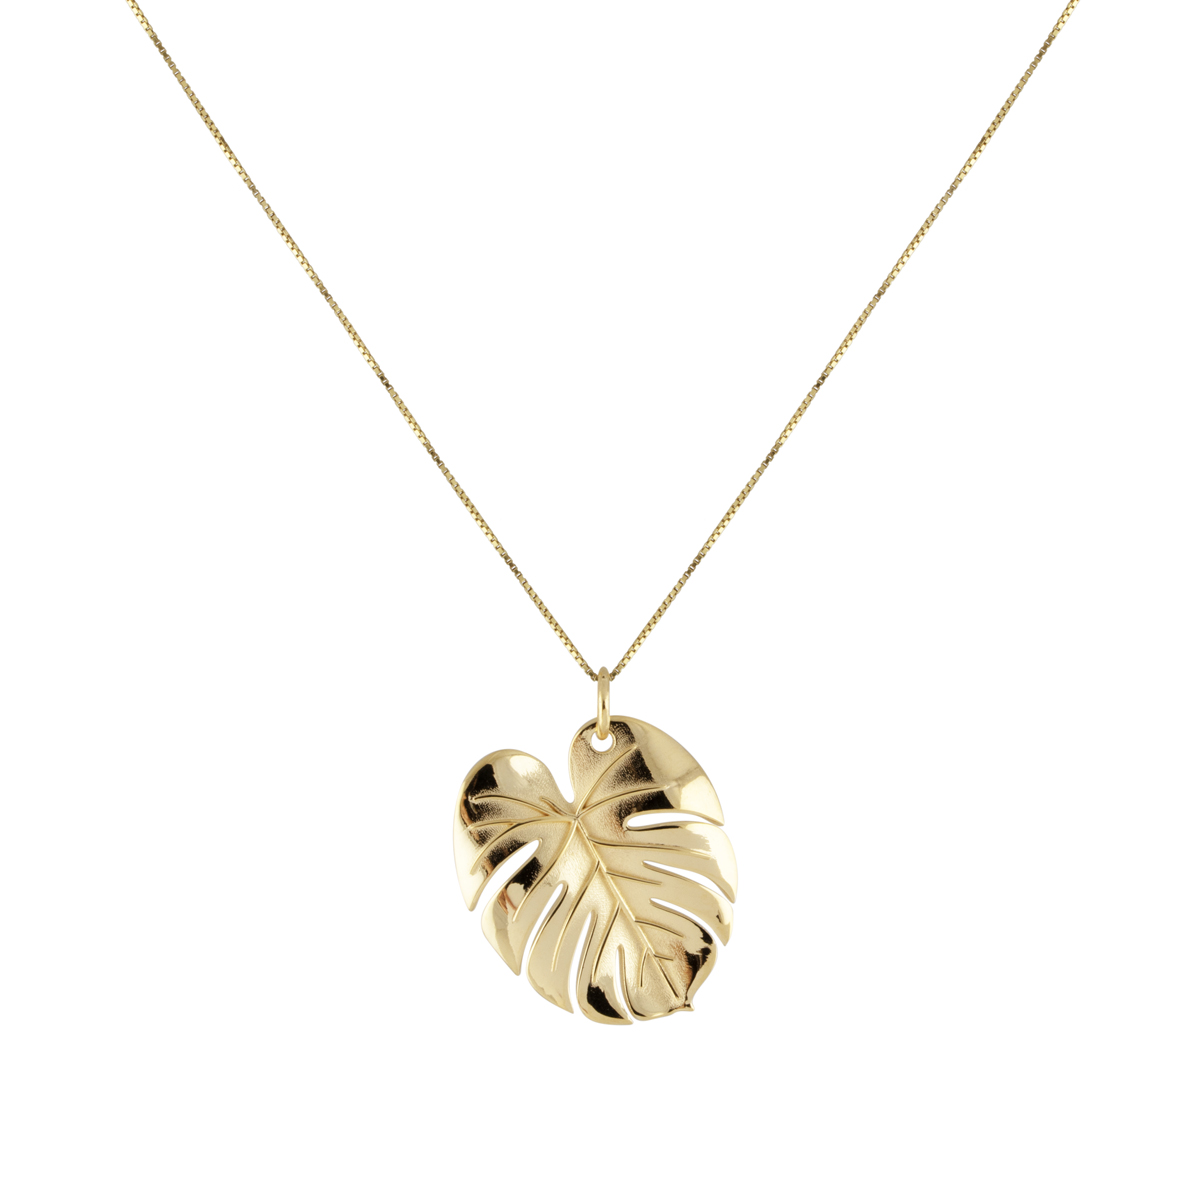 PALM LEAF NECKLACE GOLD L in the group NECKLACES at EMMA ISRAELSSON (neck100)